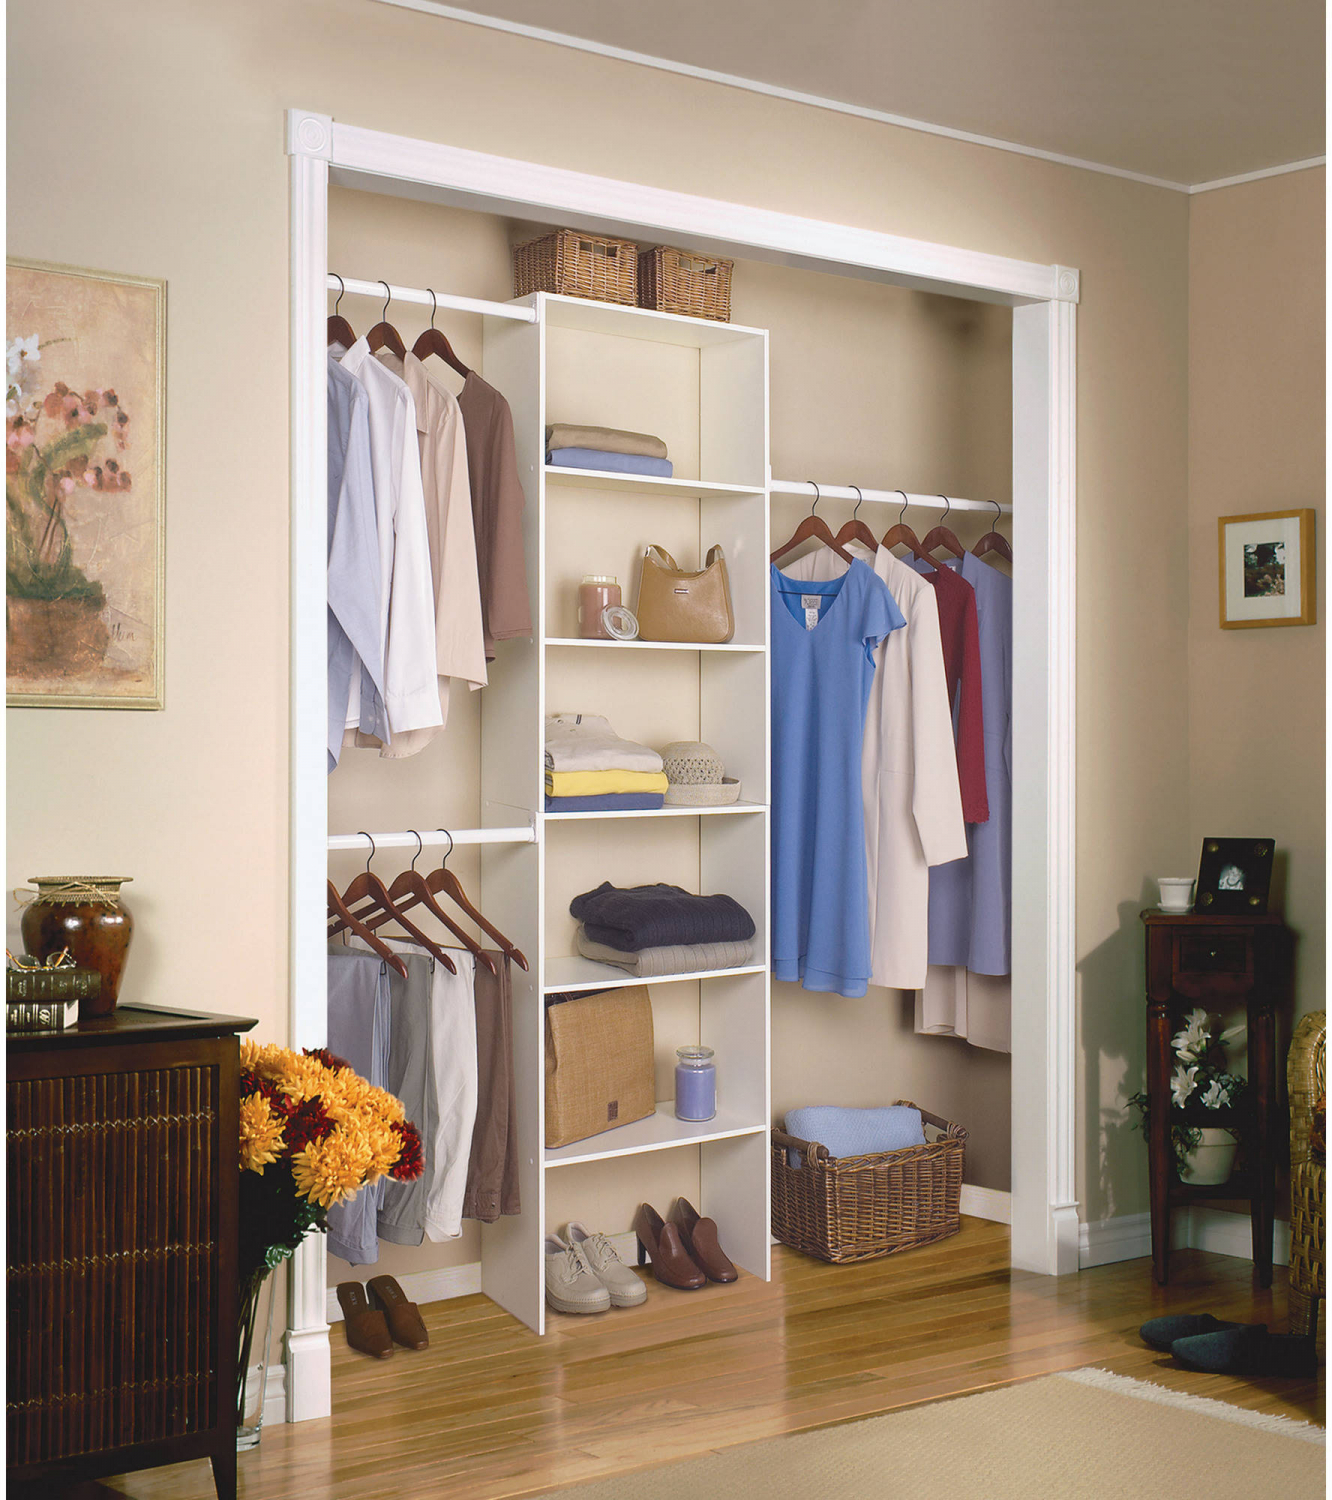 Details About Vertical Closet Organizer 24 Storage Wood Shelf System Clothes Shelves Rods New